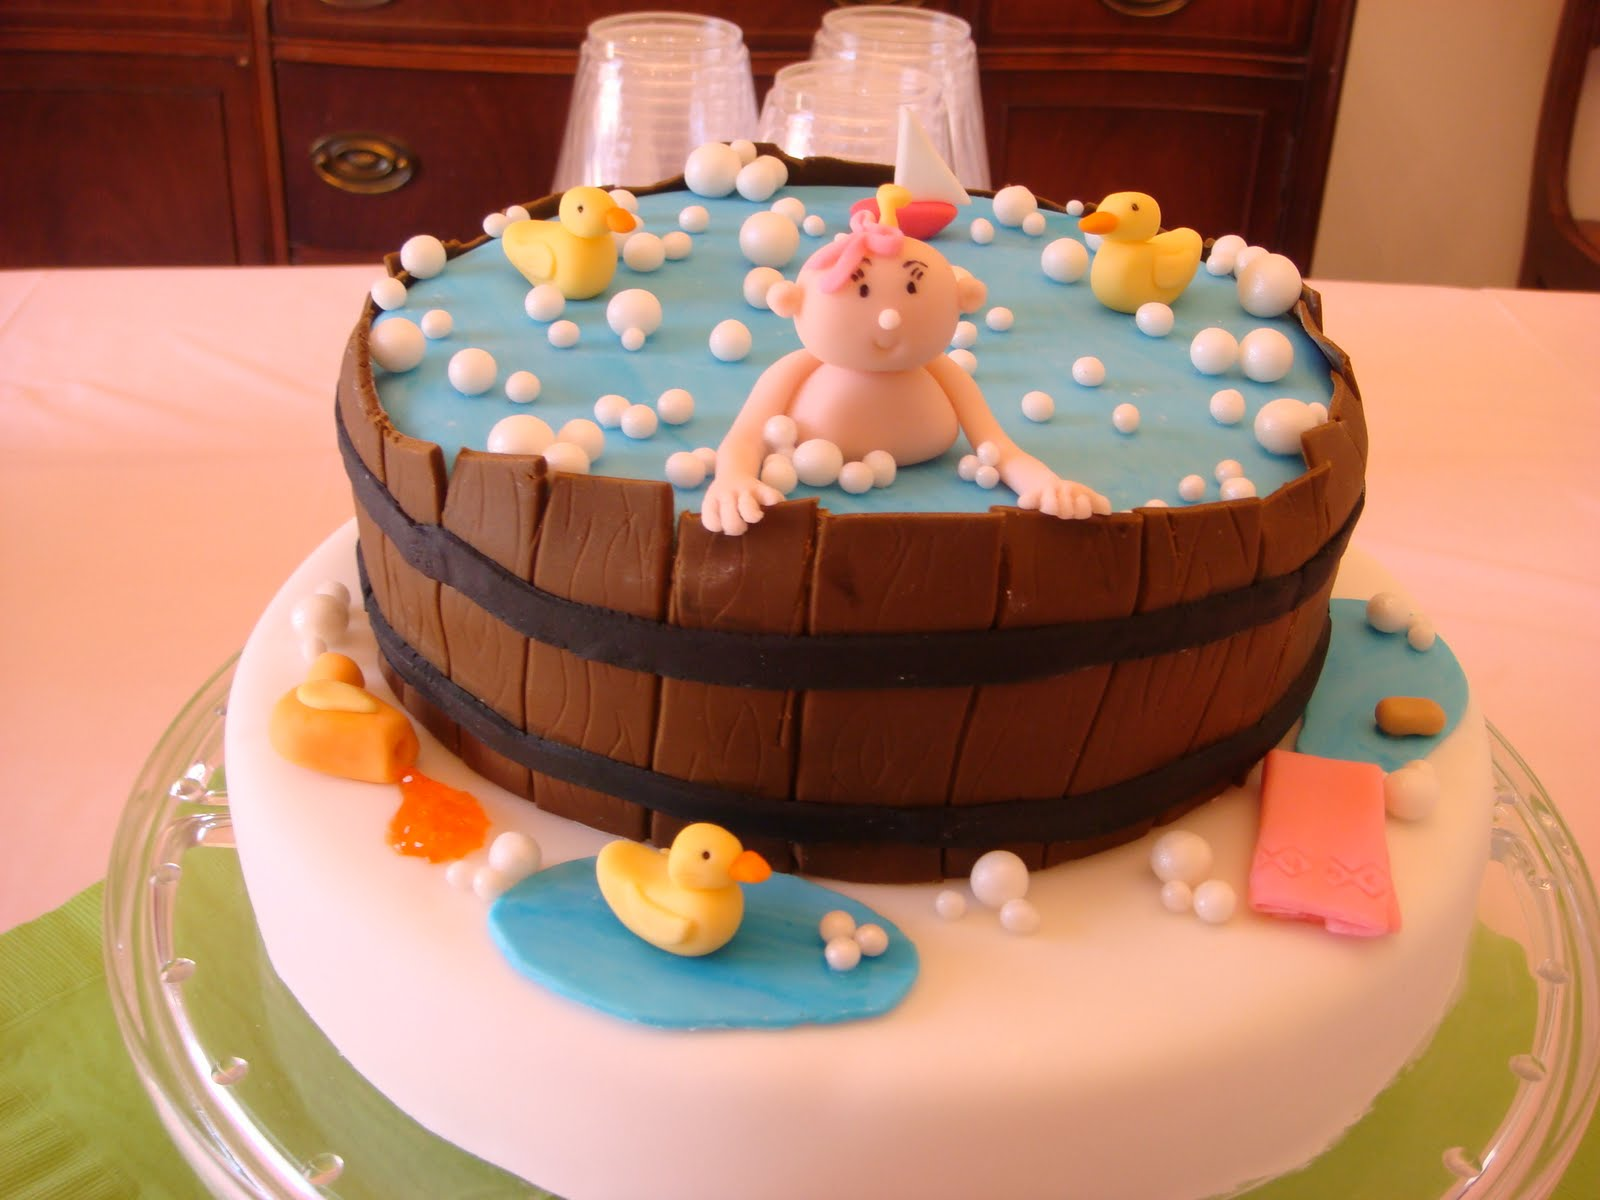 Baby shower cake for a darling little girl! : )